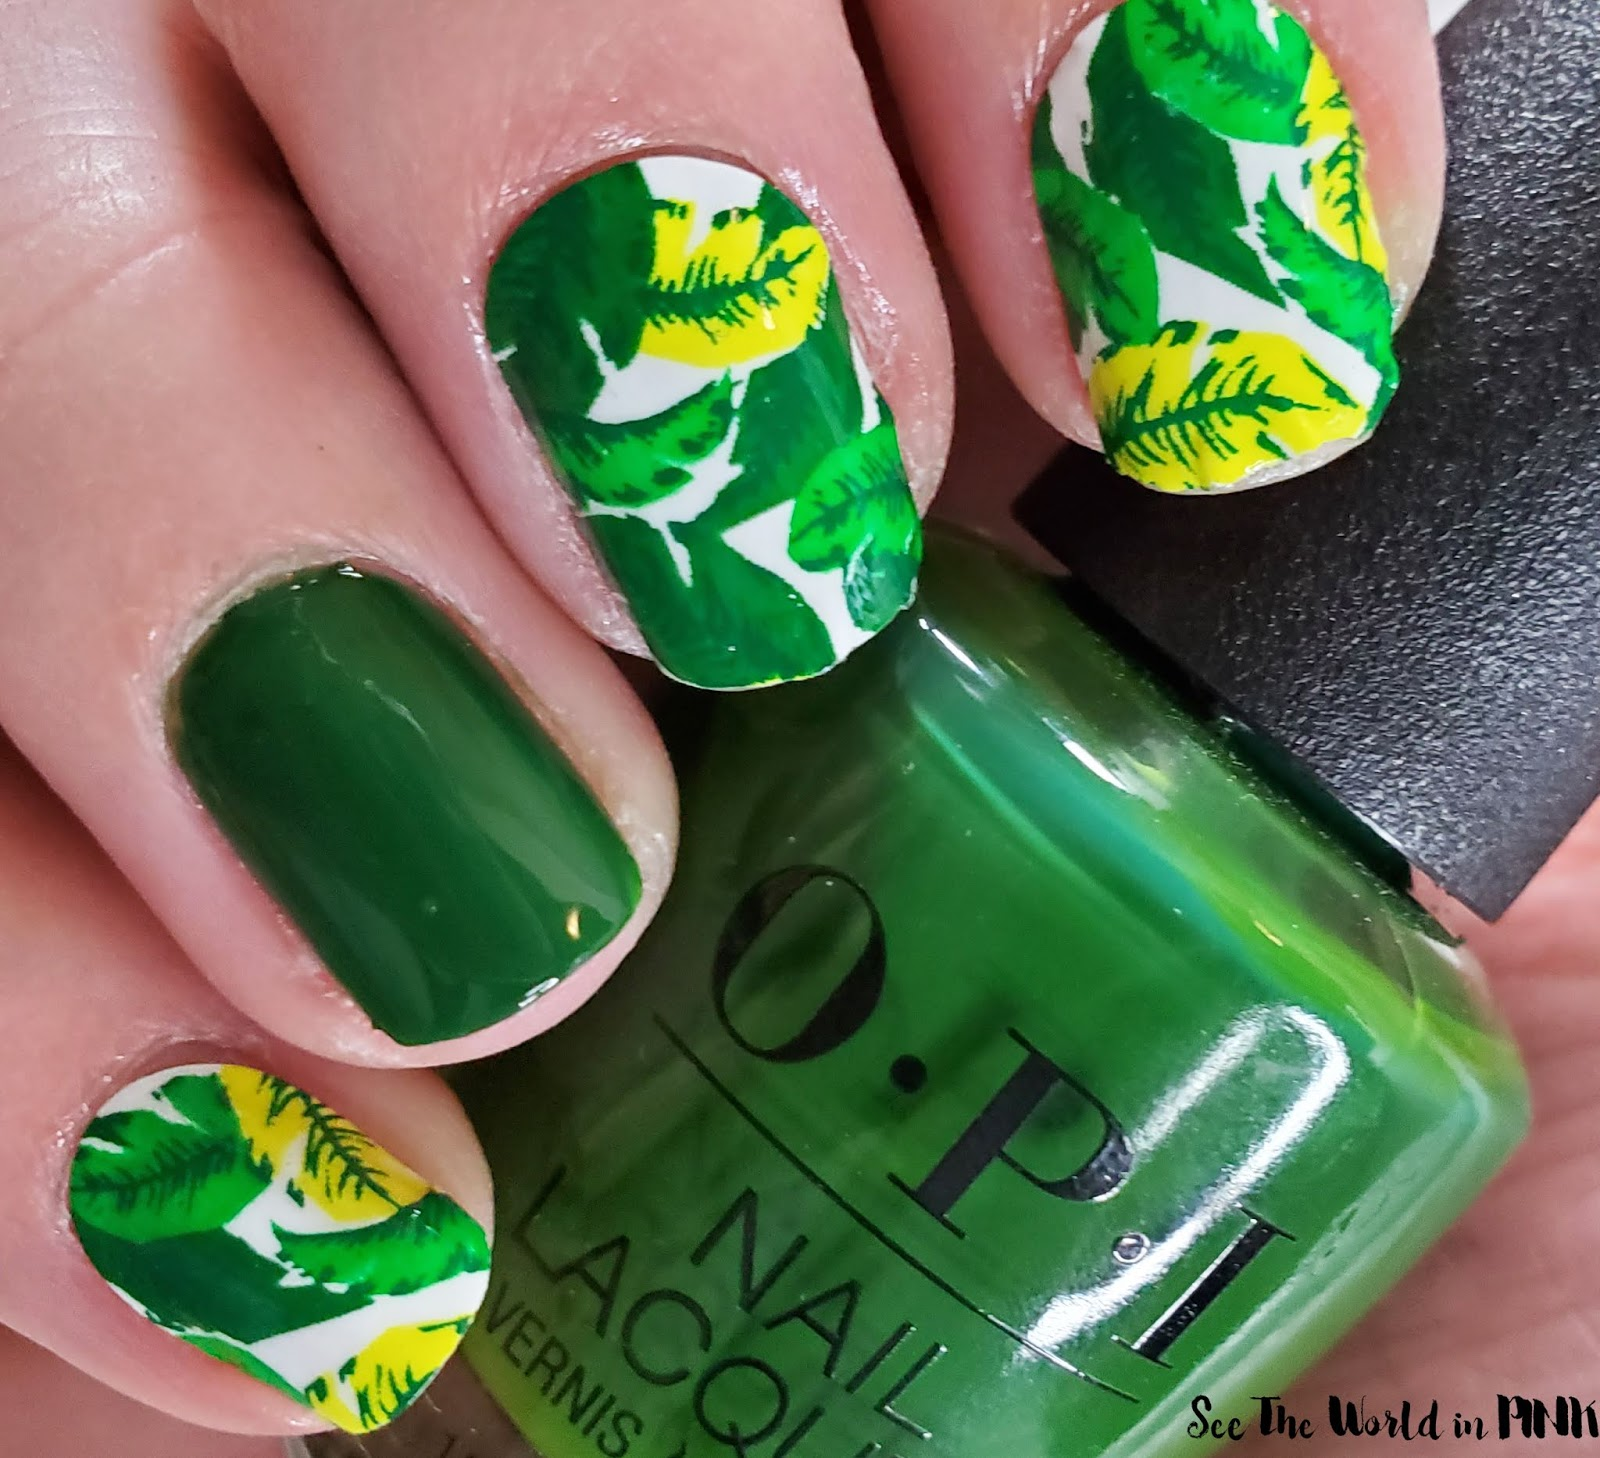 Manicure Monday - Green and Leafy Nails